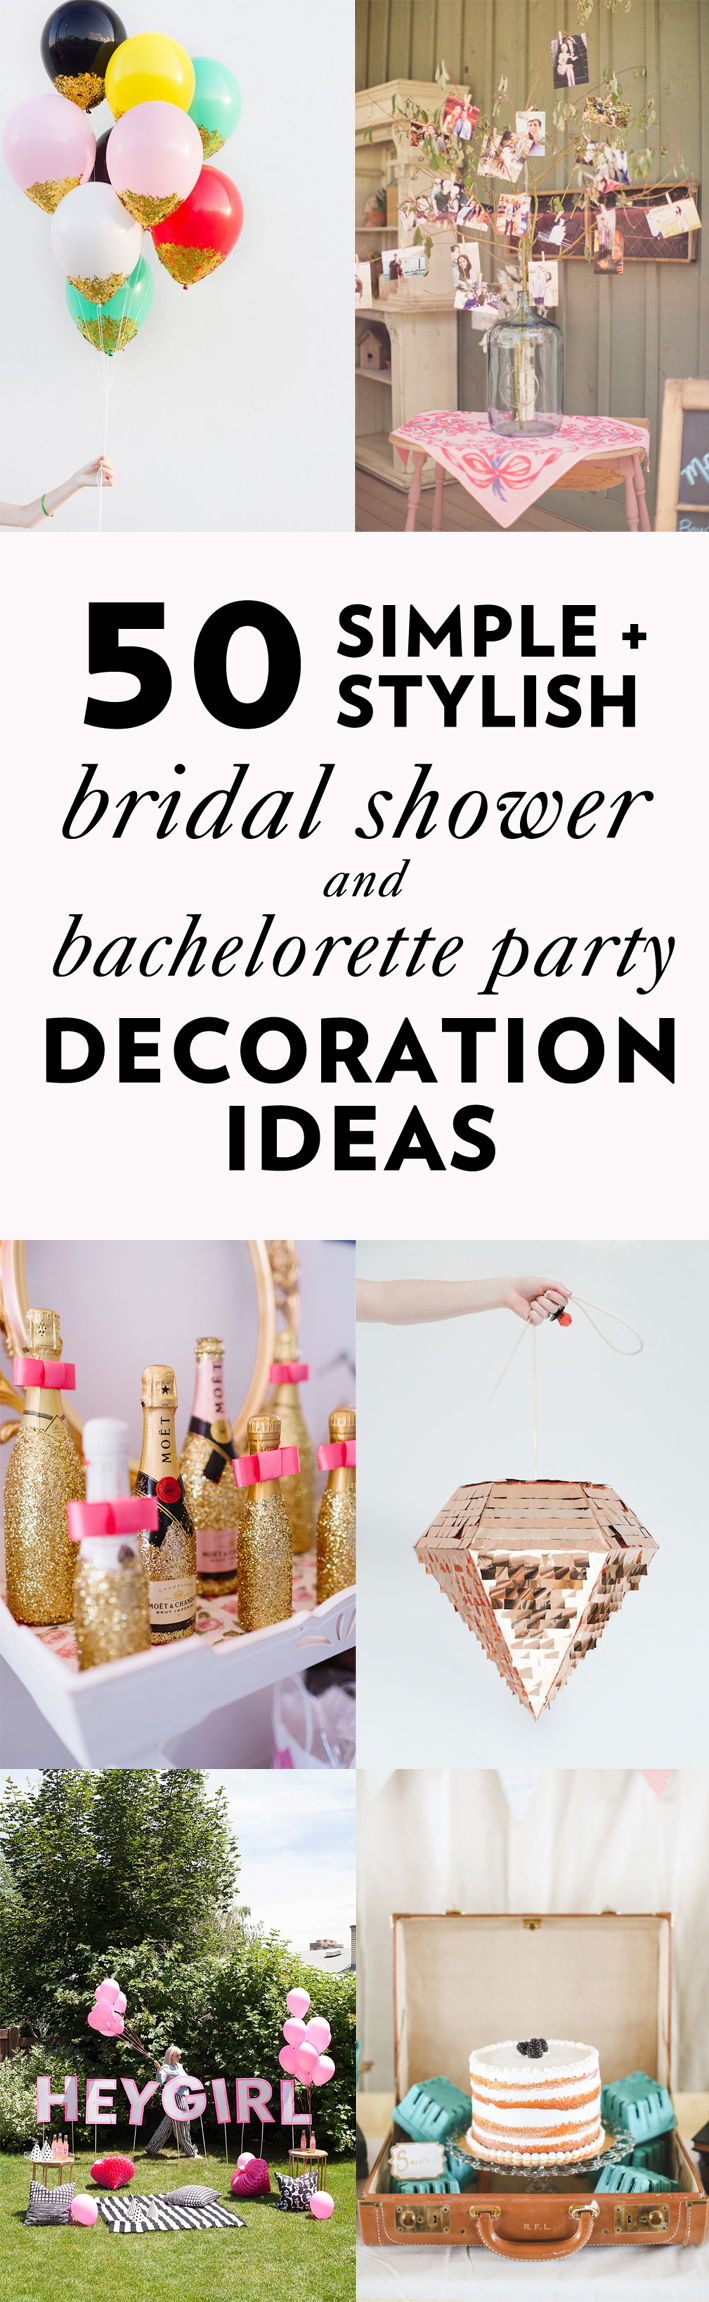 50 Simple and Stylish DIY Bridal Shower & Bachelorette Decoration ...